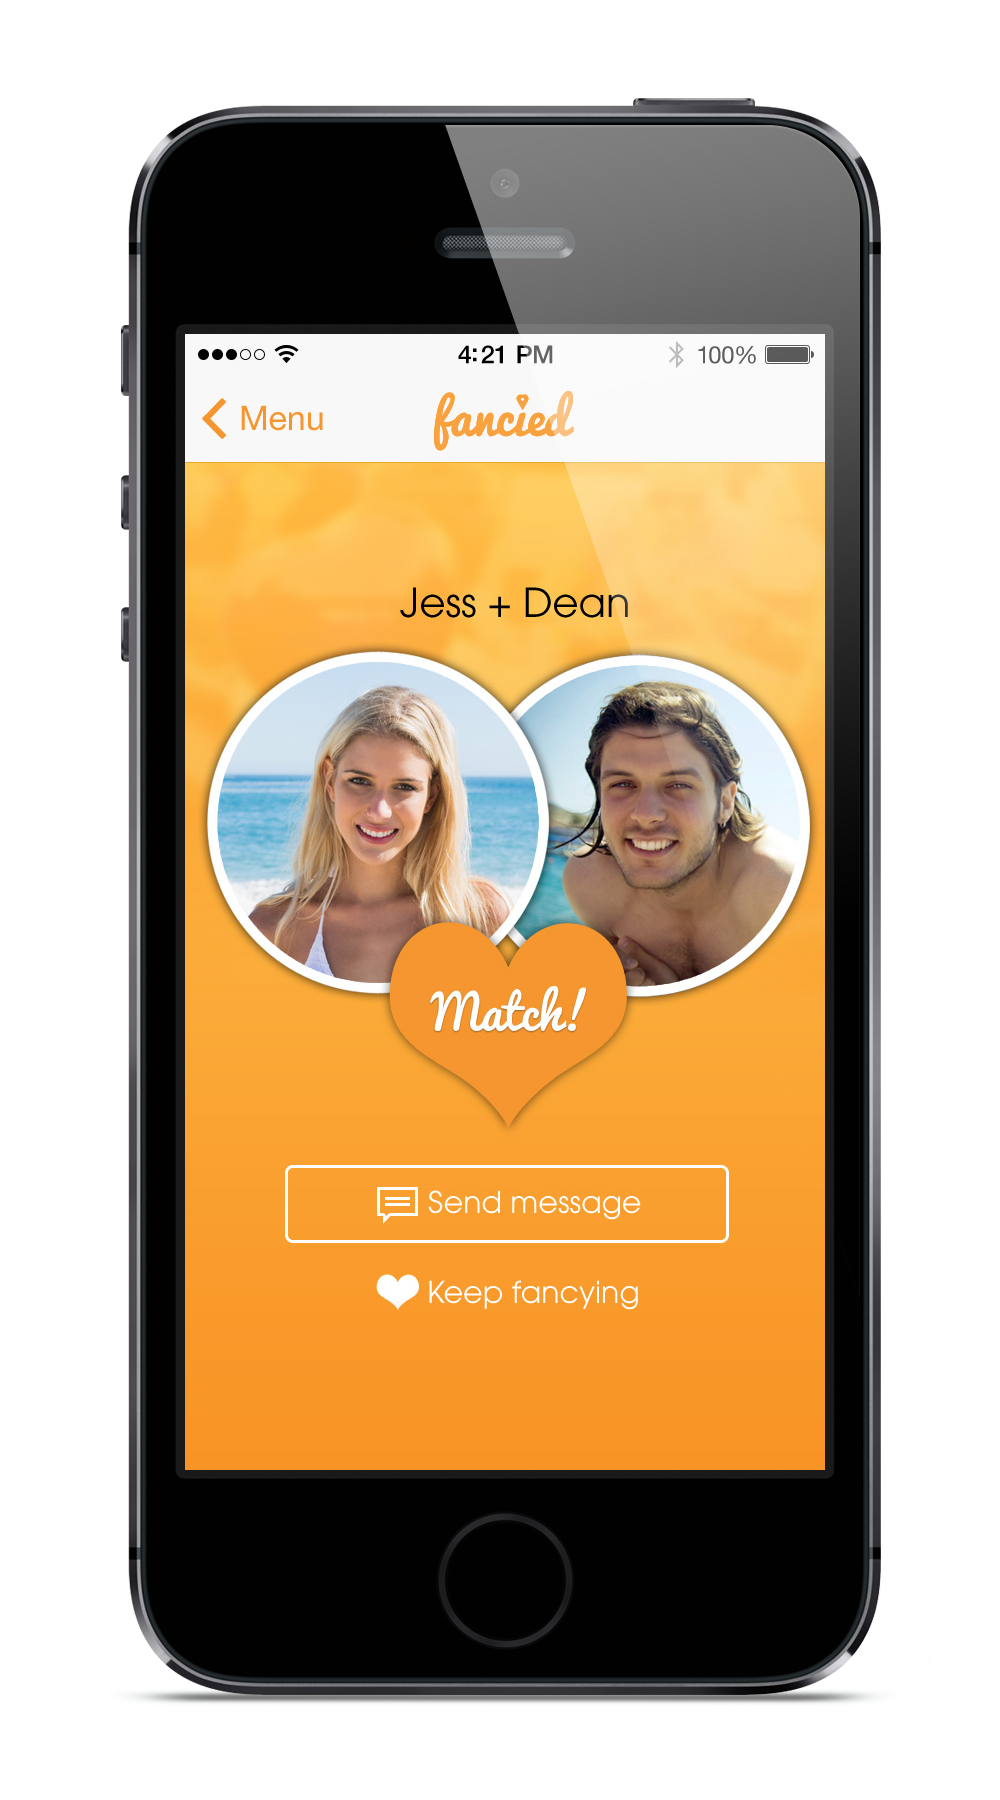 B dating app in Sydney